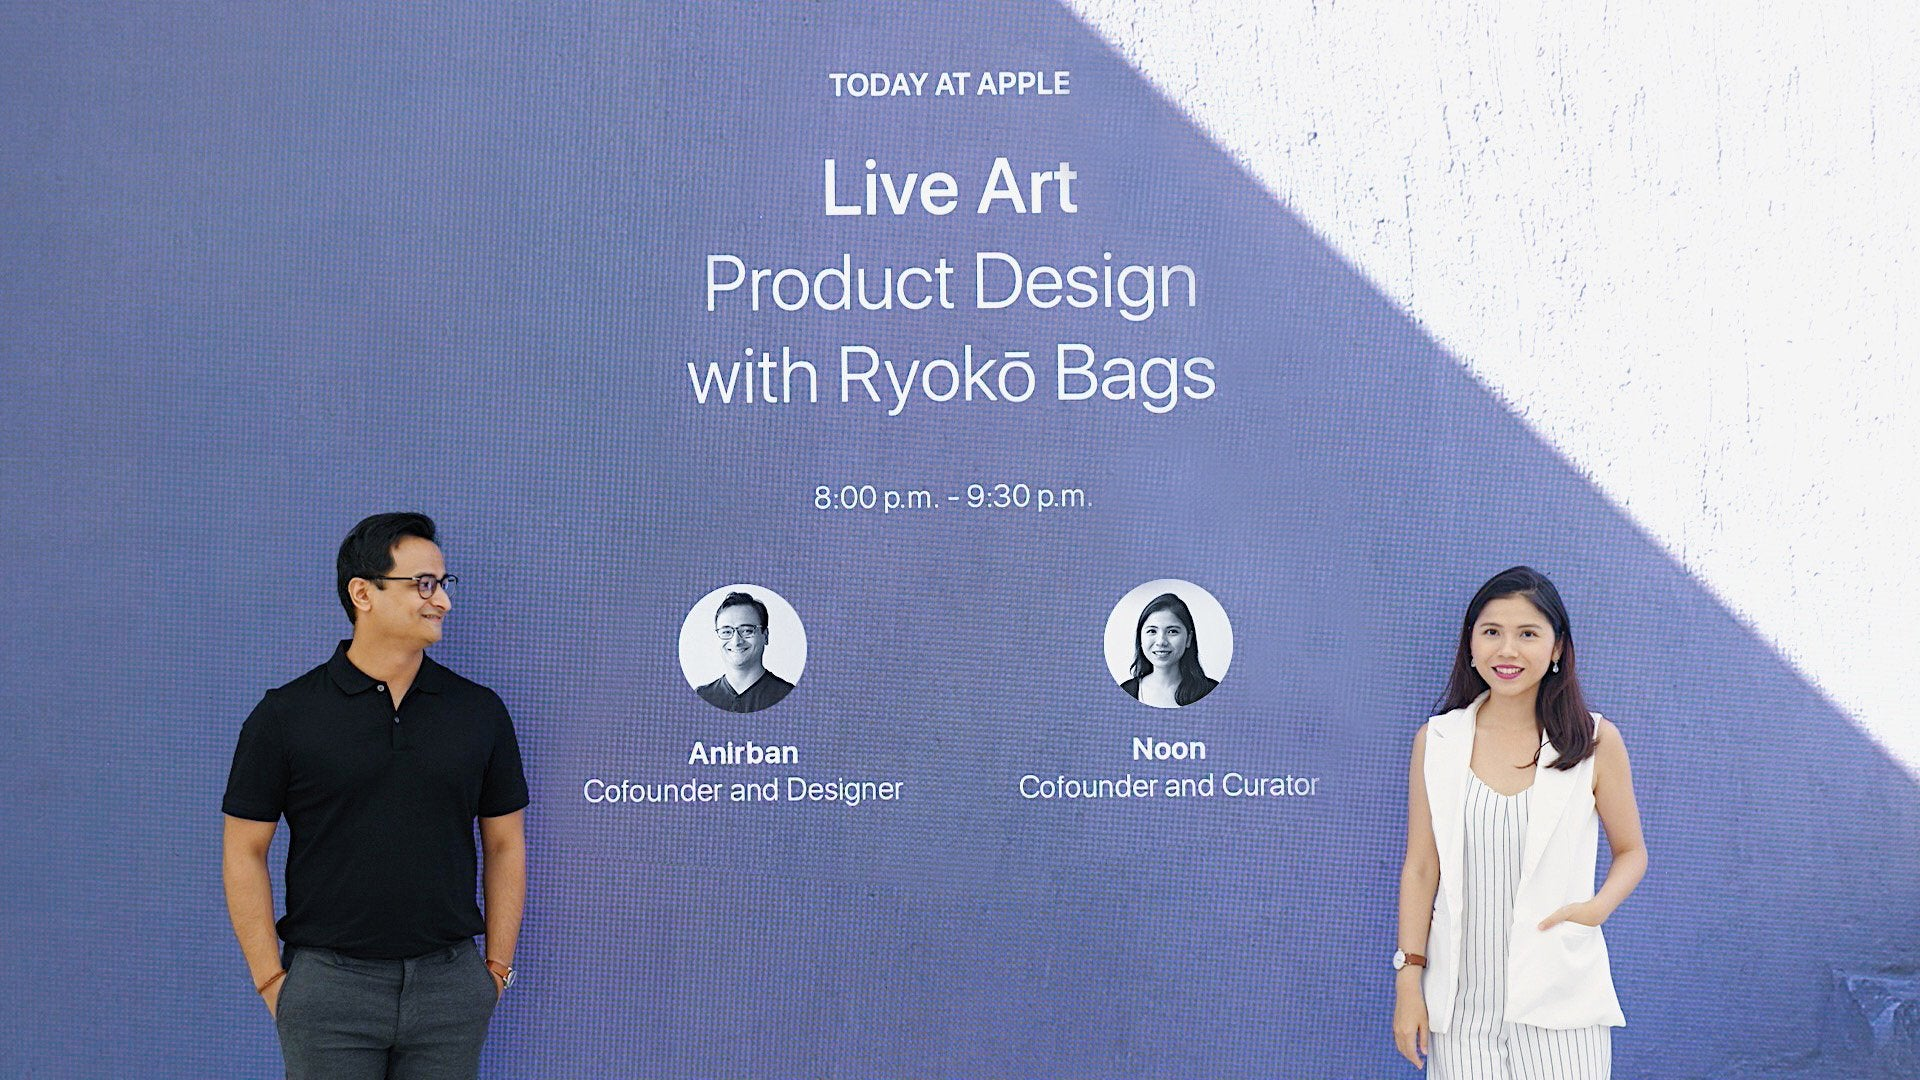 Noon and Anirban from Ryoko Bags at Apple